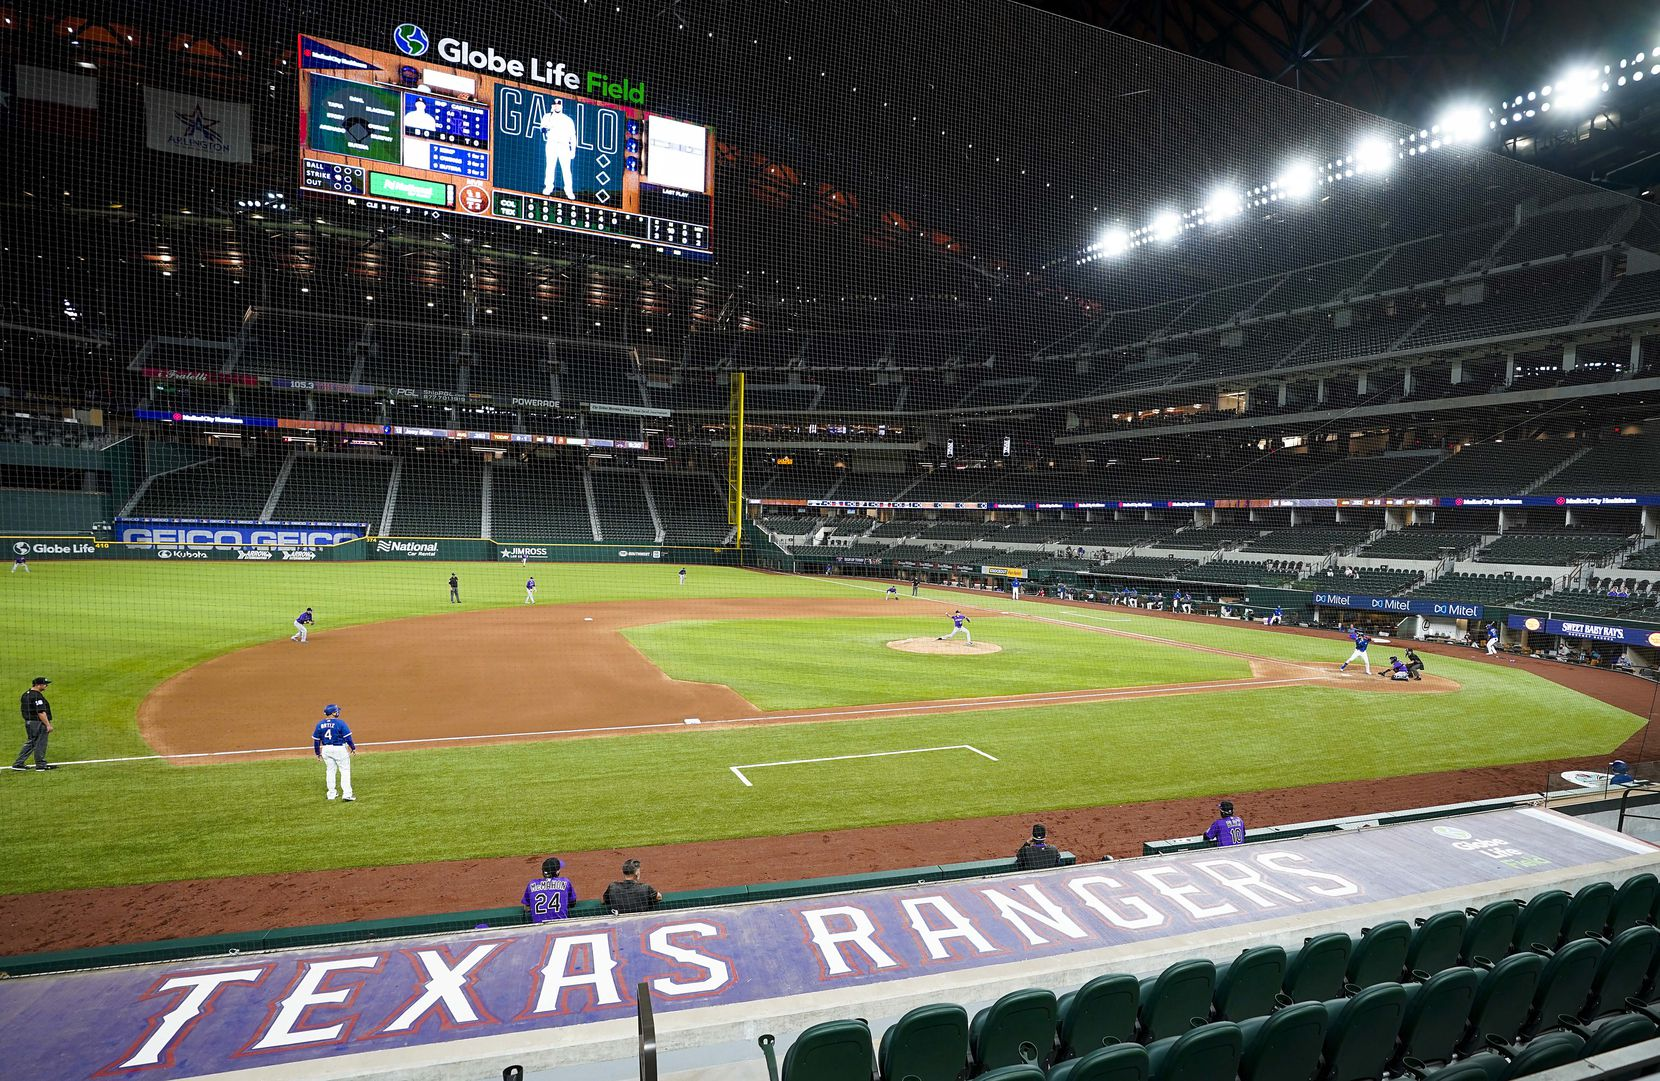 Texas Rangers outfielder Joey Gallo bats during the seventh inning of an exhibition game  against the Colorado Rockies at Globe Life Field on Wednesday, July 22, 2020.